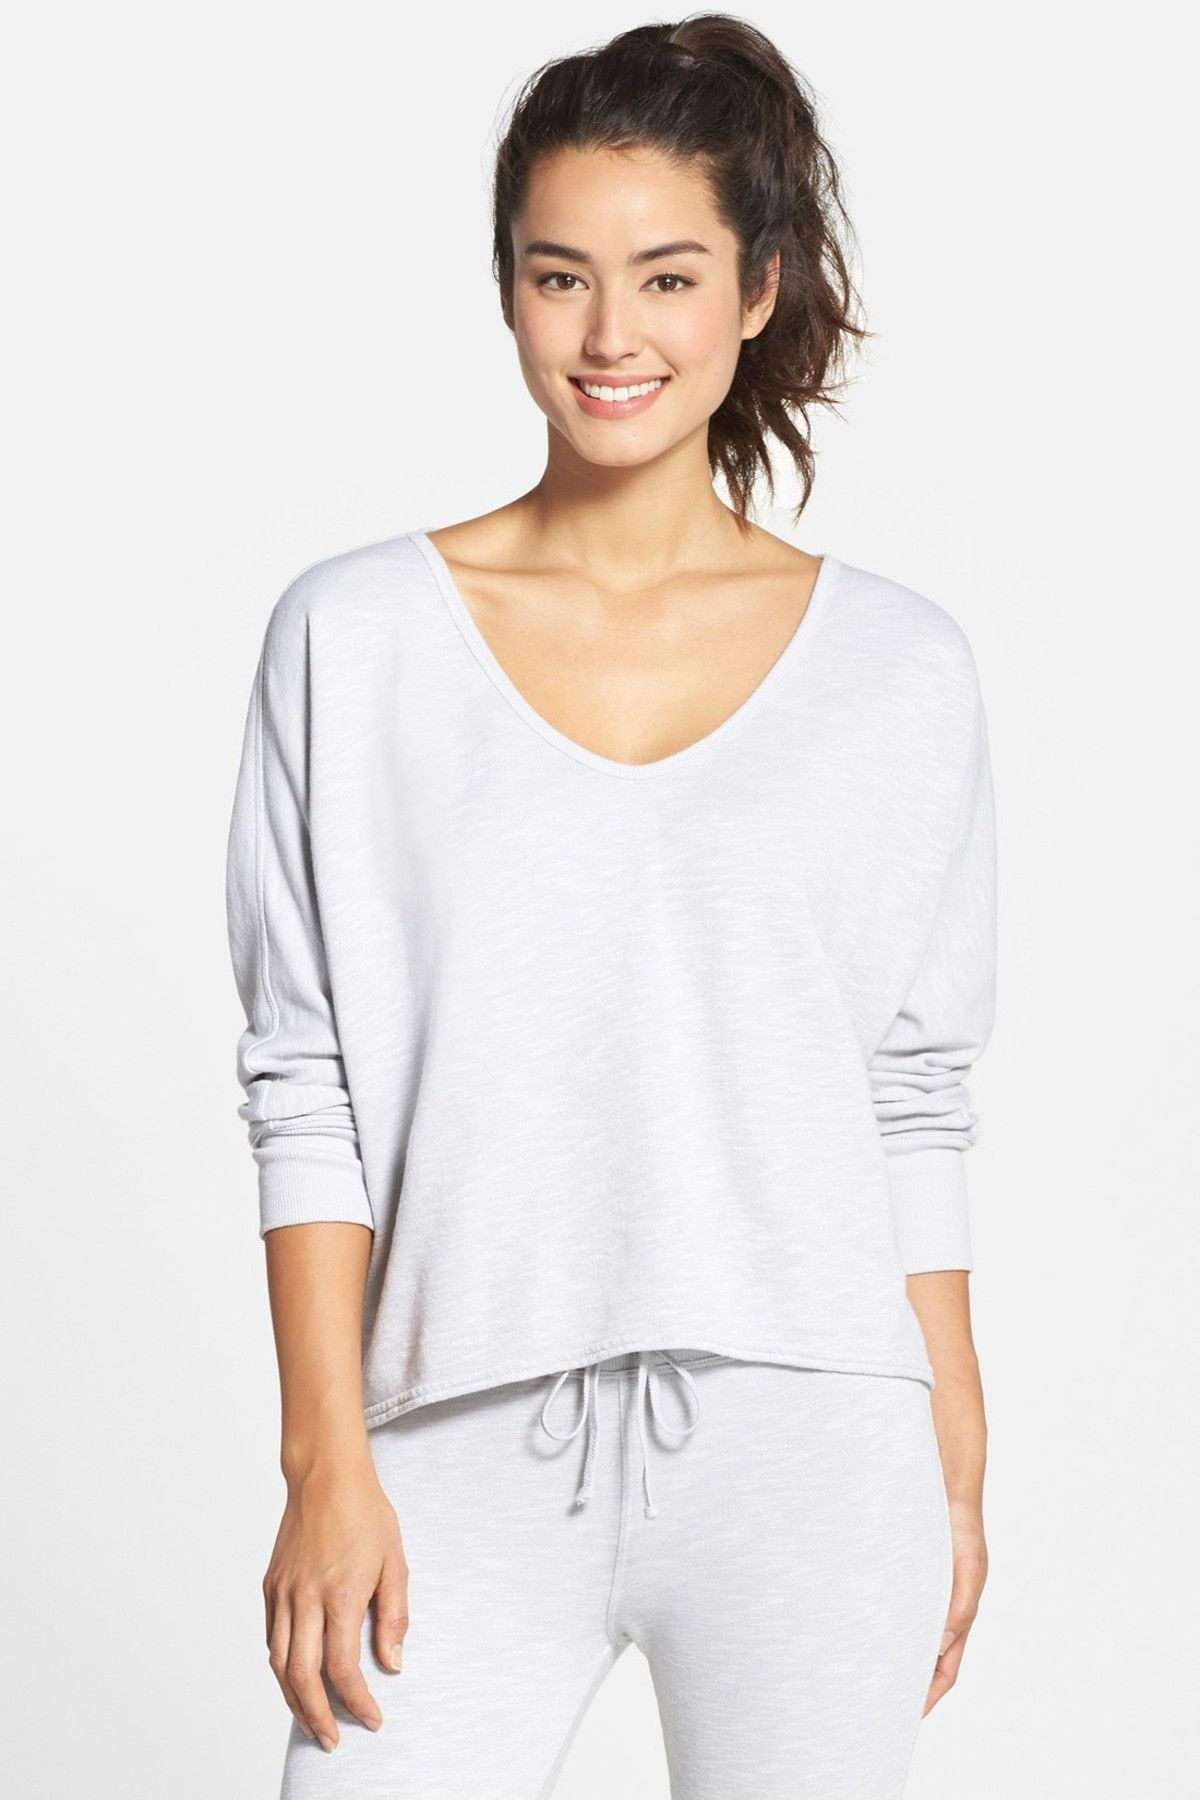 HARD TAIL - V-Neck Dolman Sleeve Pullover at Nordstrom Rack. Free Shipping on orders over $100.